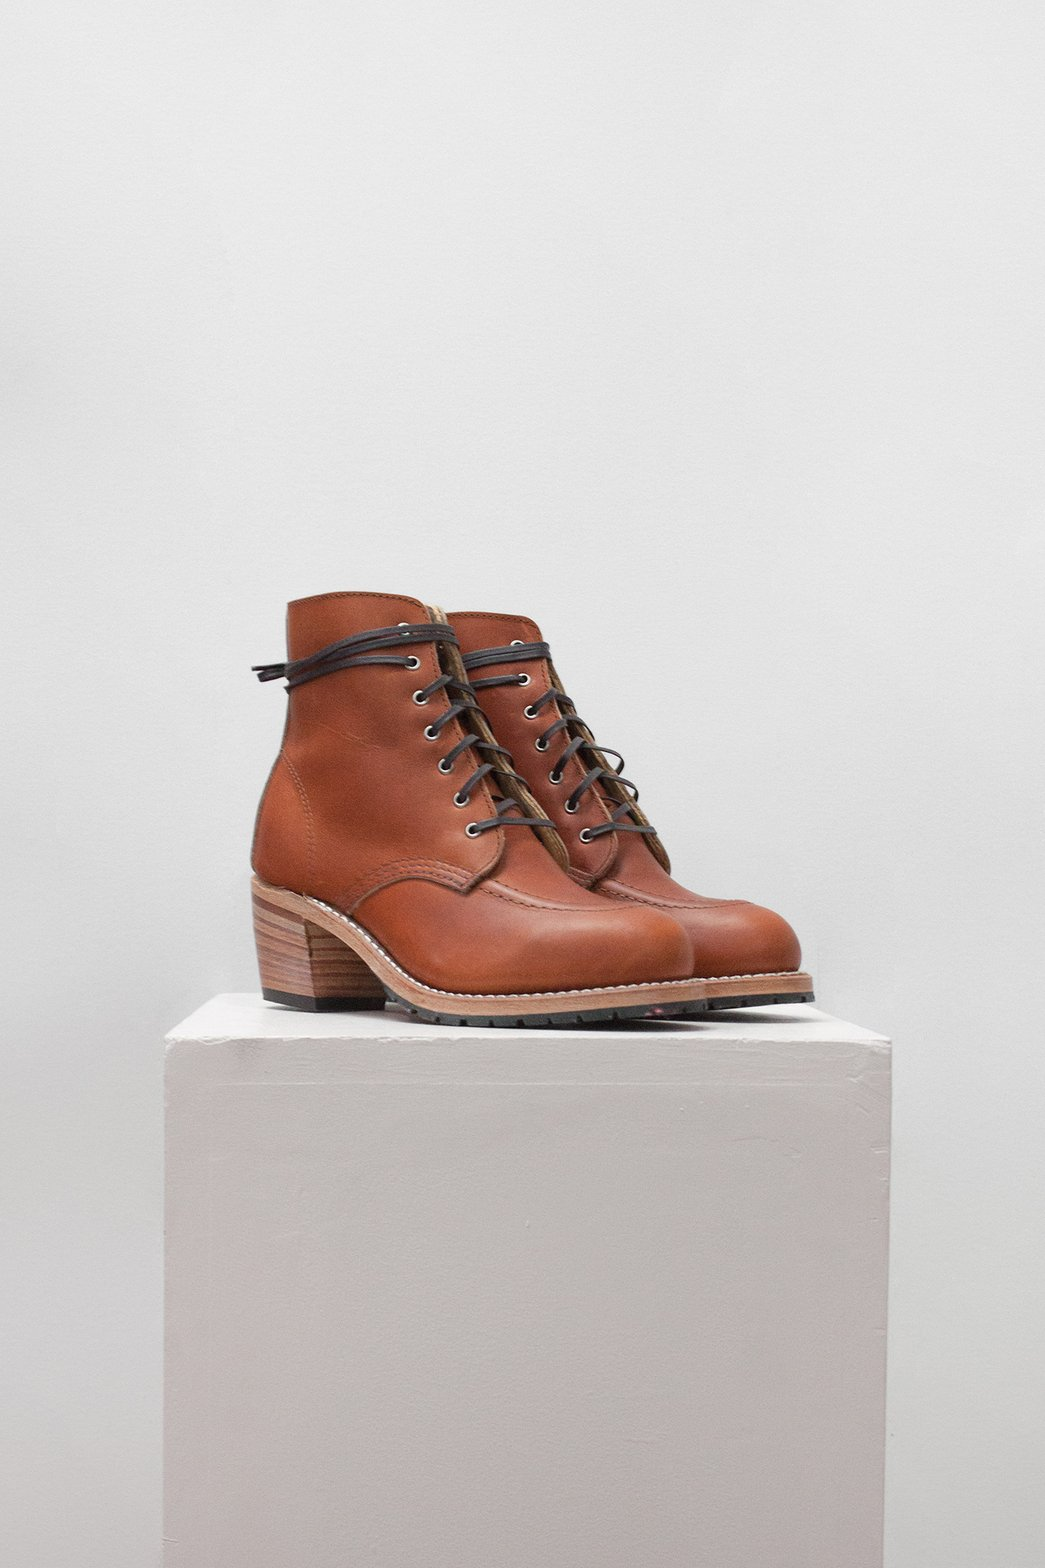 Best Eco-Friendly, Ethical Boots for